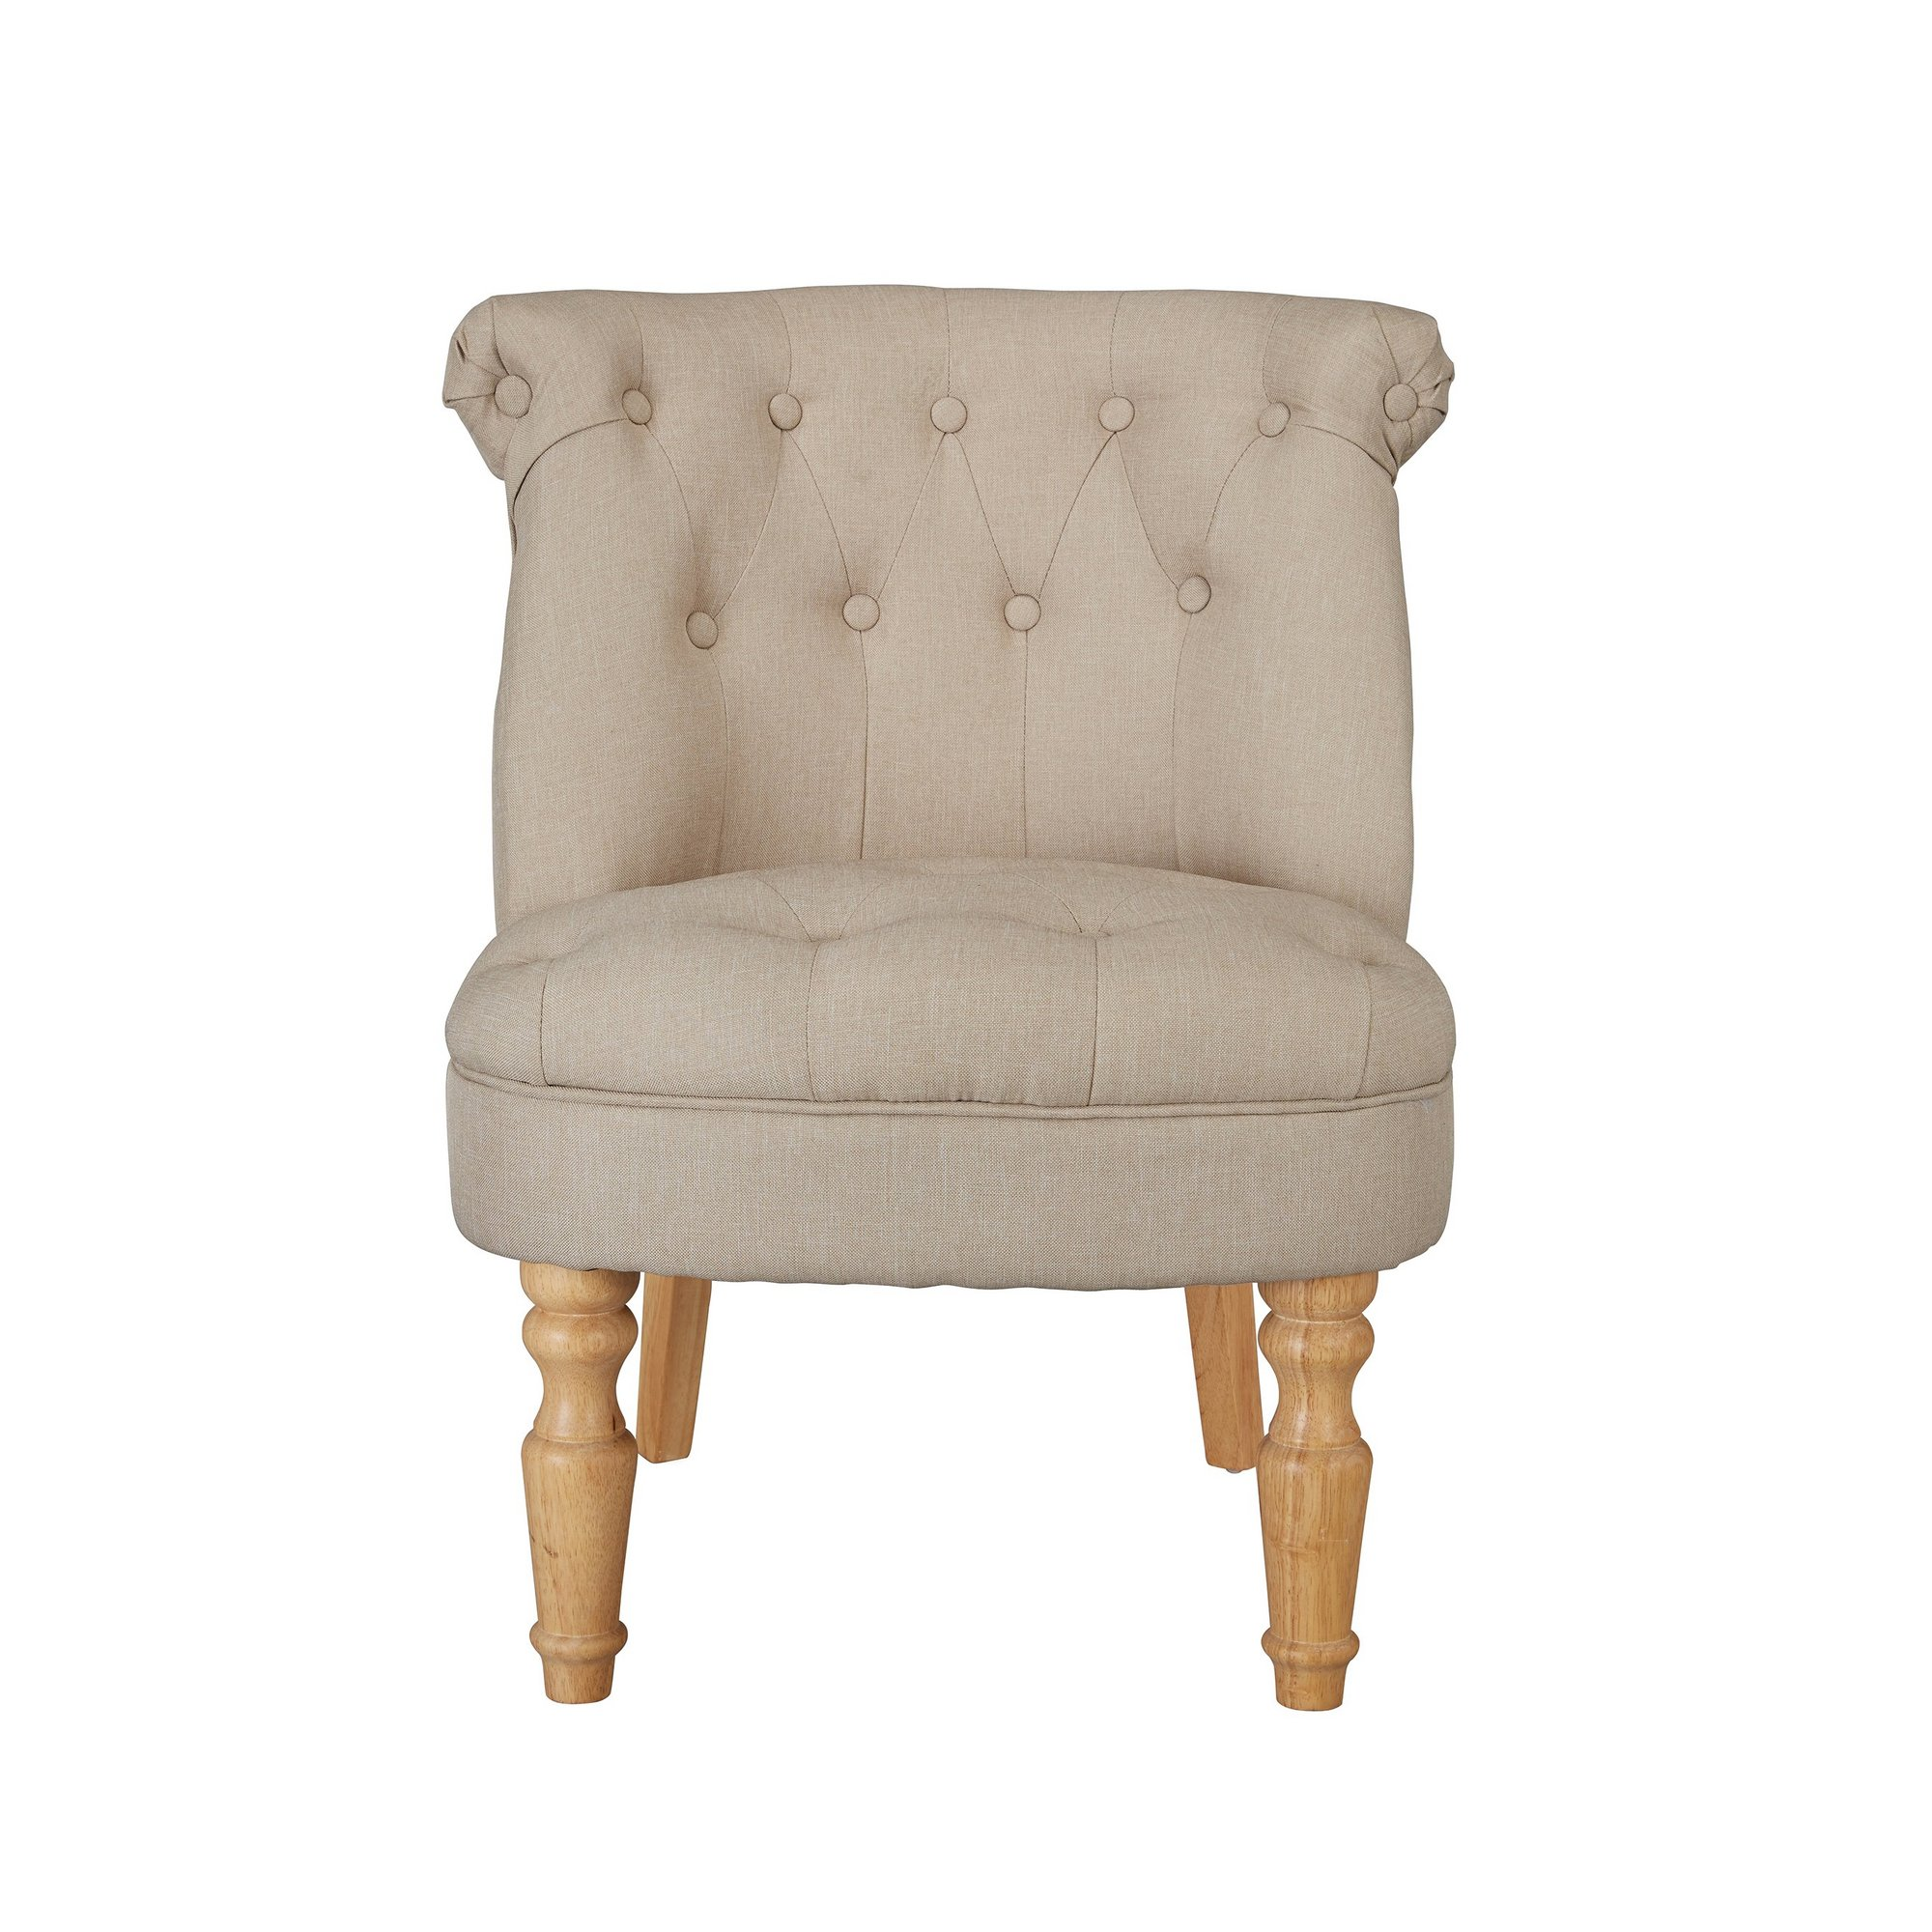 Image of Charlotte Beige Occasional Chair